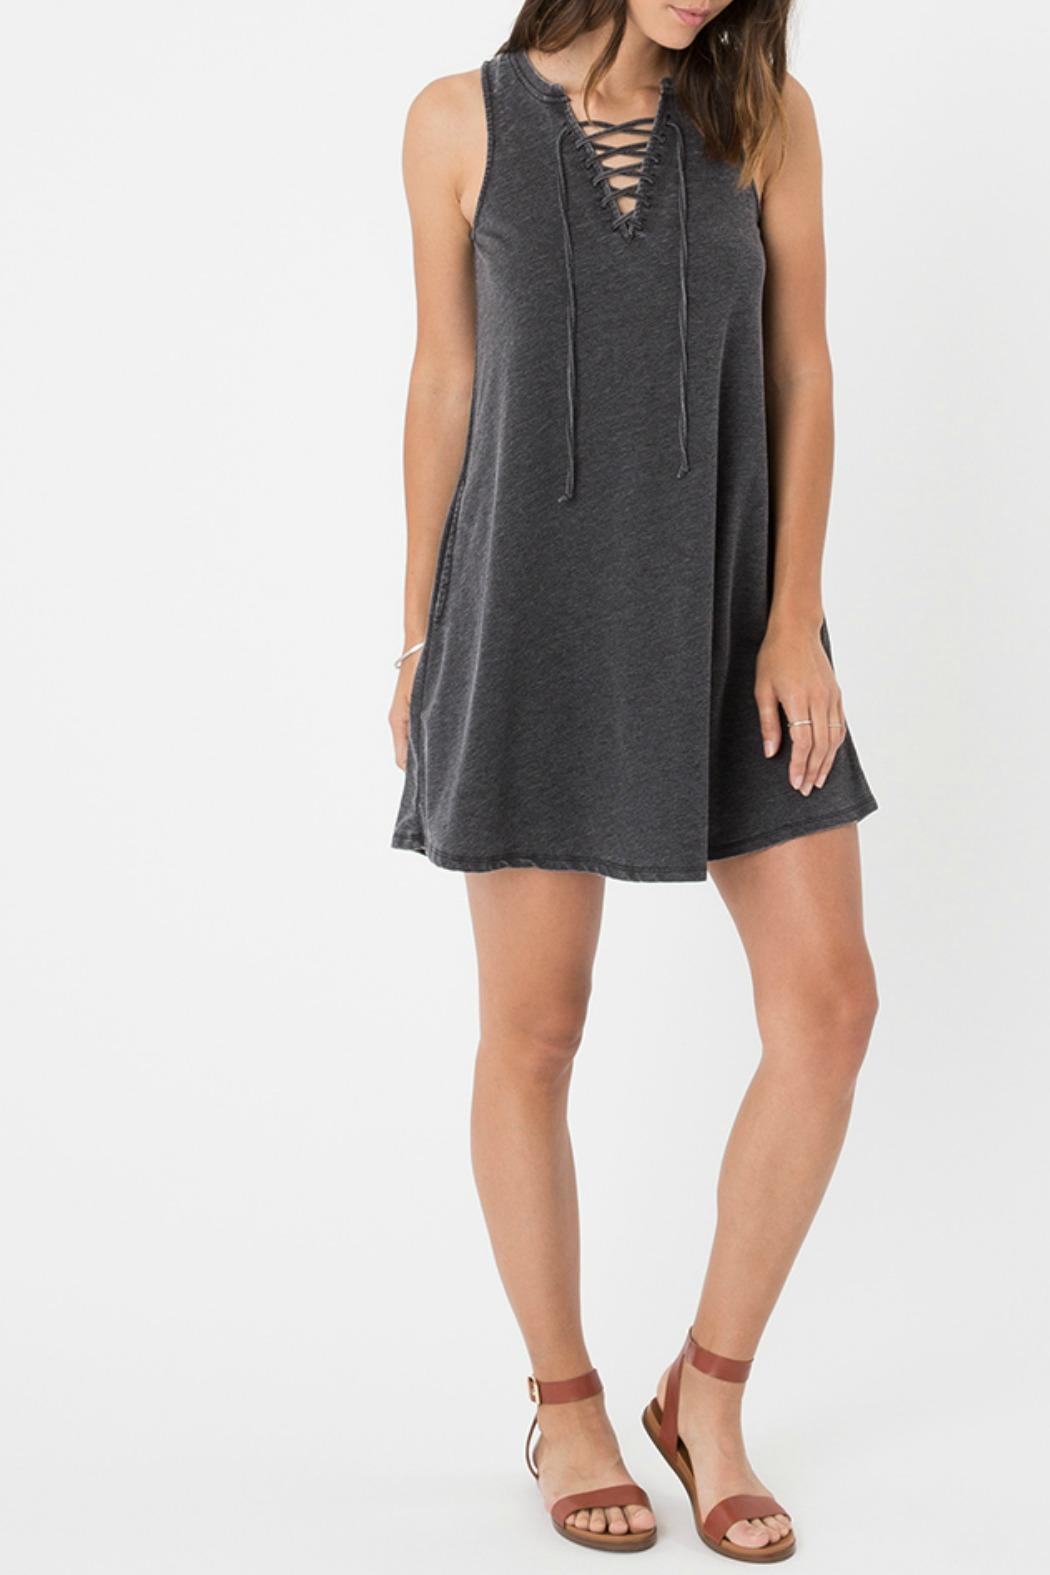 z supply Lace-Up Mini Dress - Front Full Image